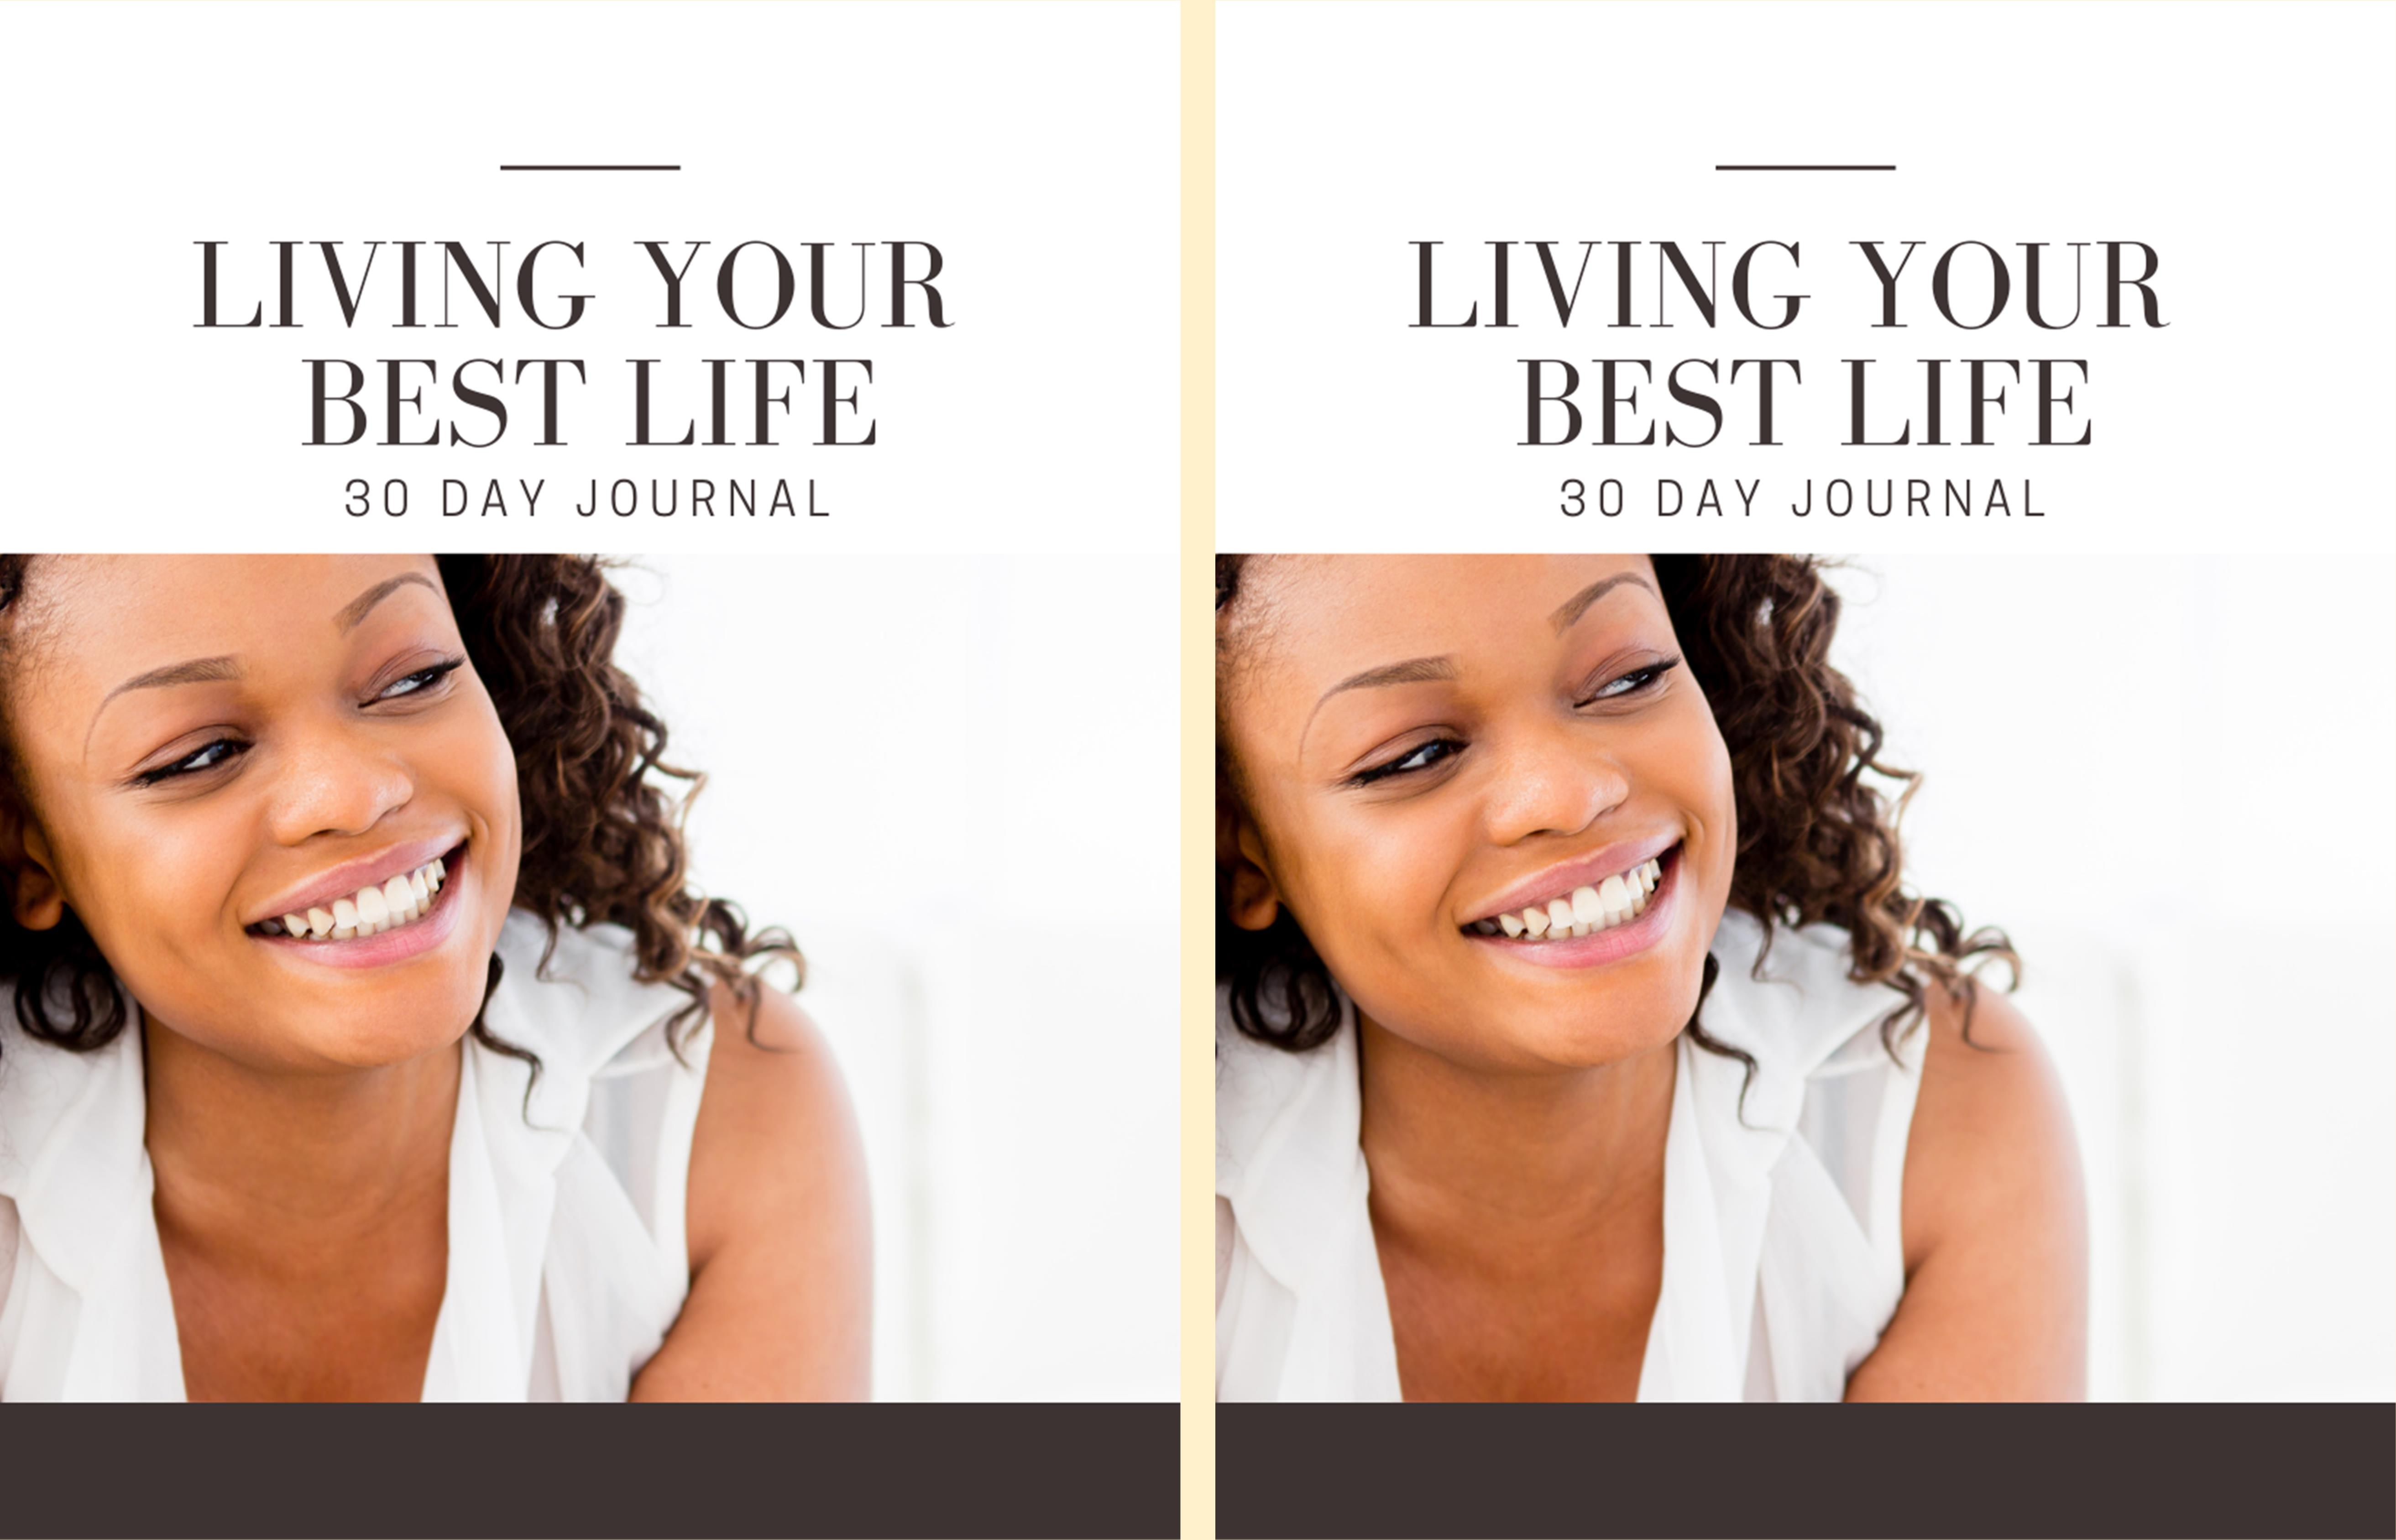 Living Your Best Life Journal cover image